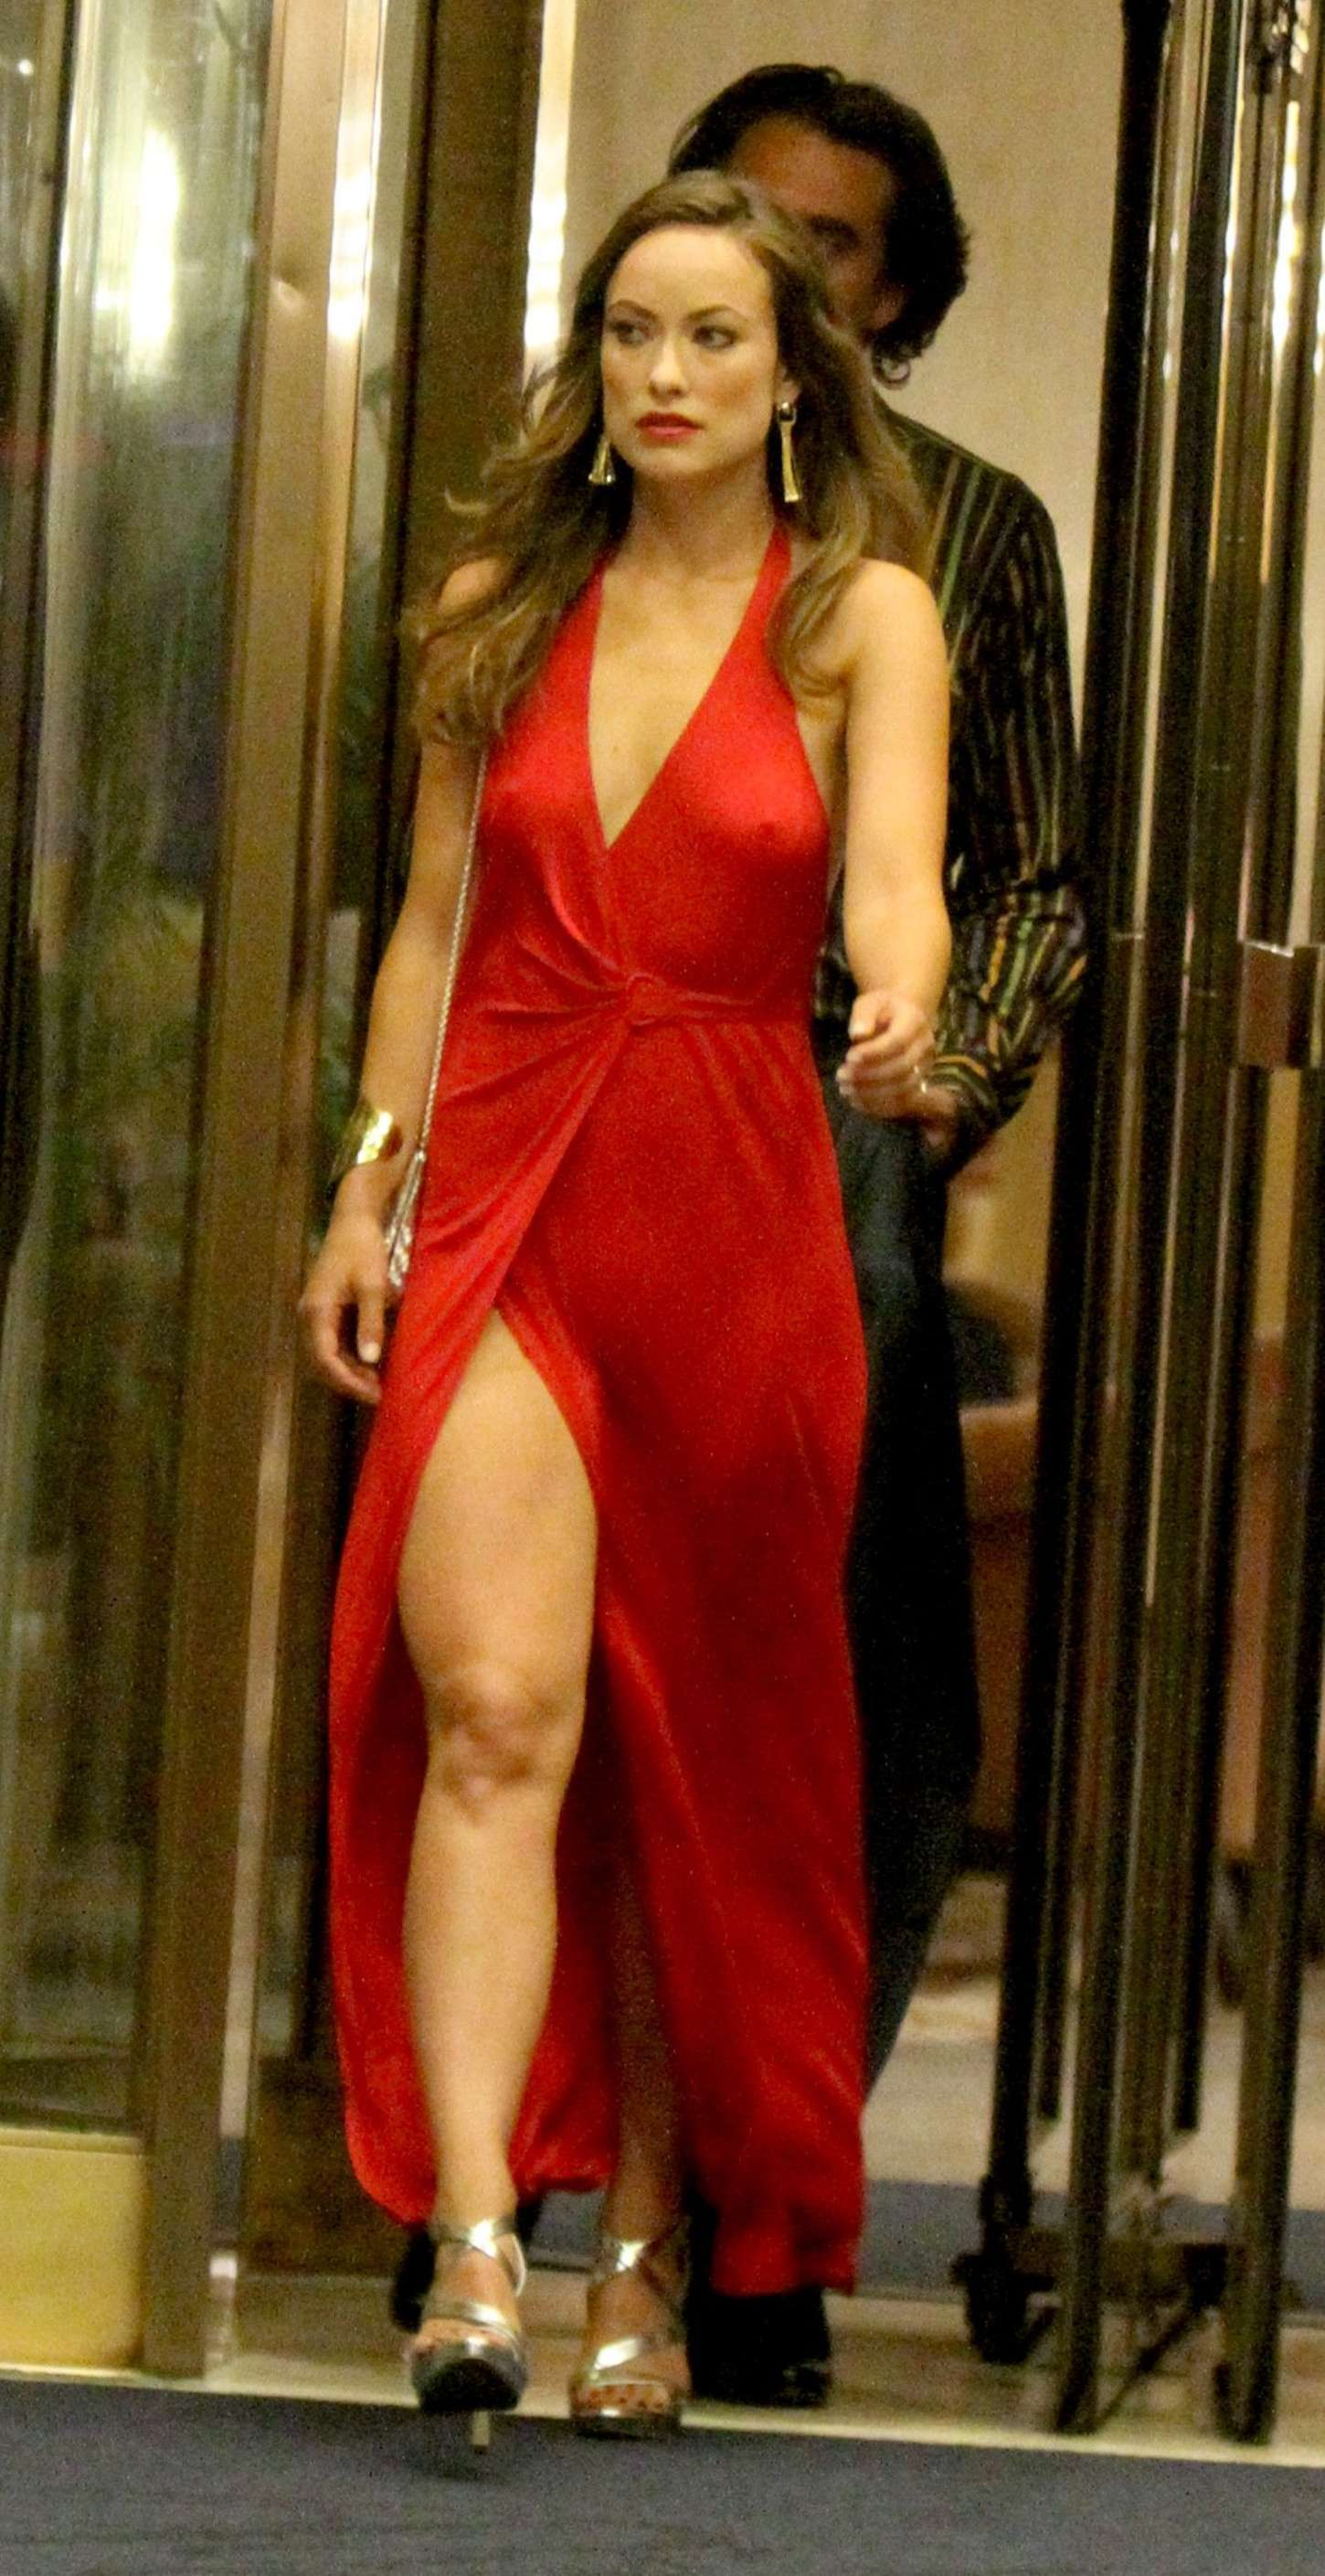 Olivia Wilde In Red Dress -19  Gotceleb-3378